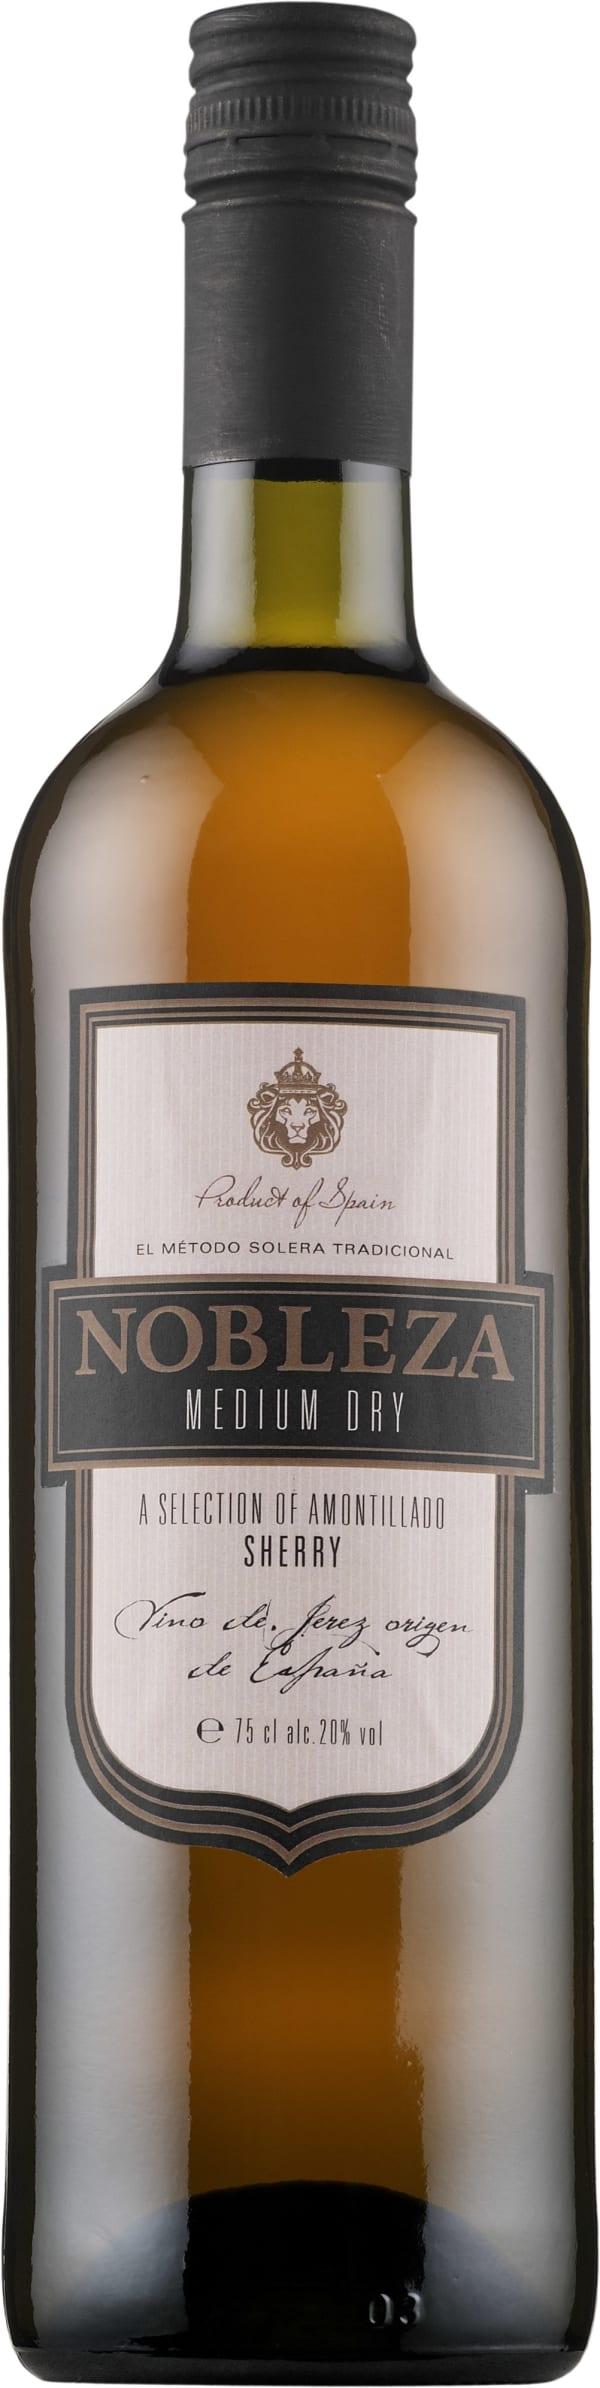 Nobleza Medium Dry Sherry